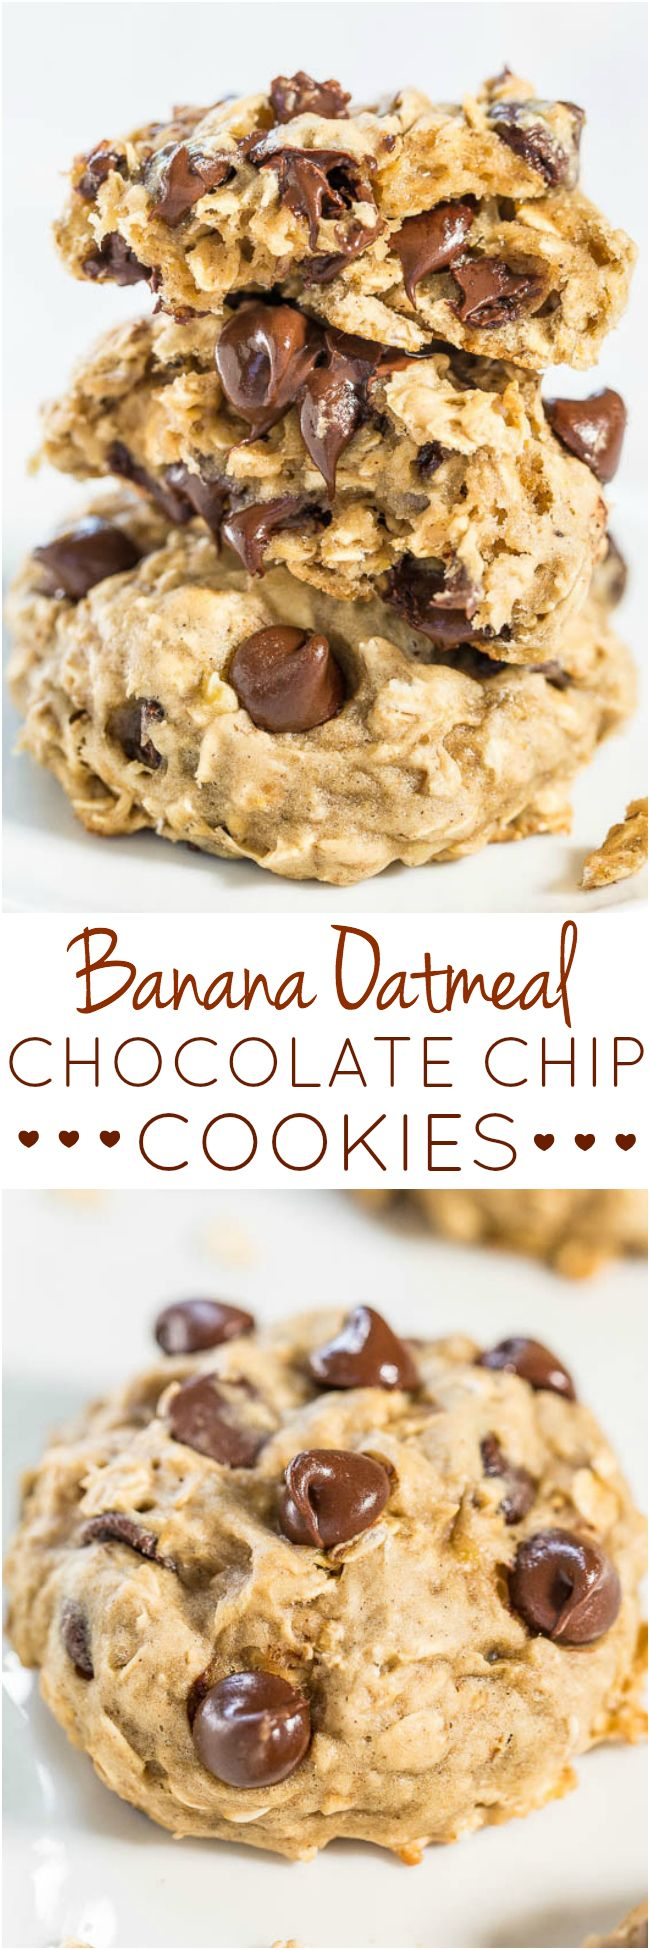 Banana Oatmeal Chocolate Chip Cookies - Only 1/4 cup butter used! Like oatmeal cookies but with banana to keep them healthier! So soft, chewy, and you'll never miss the butter!!